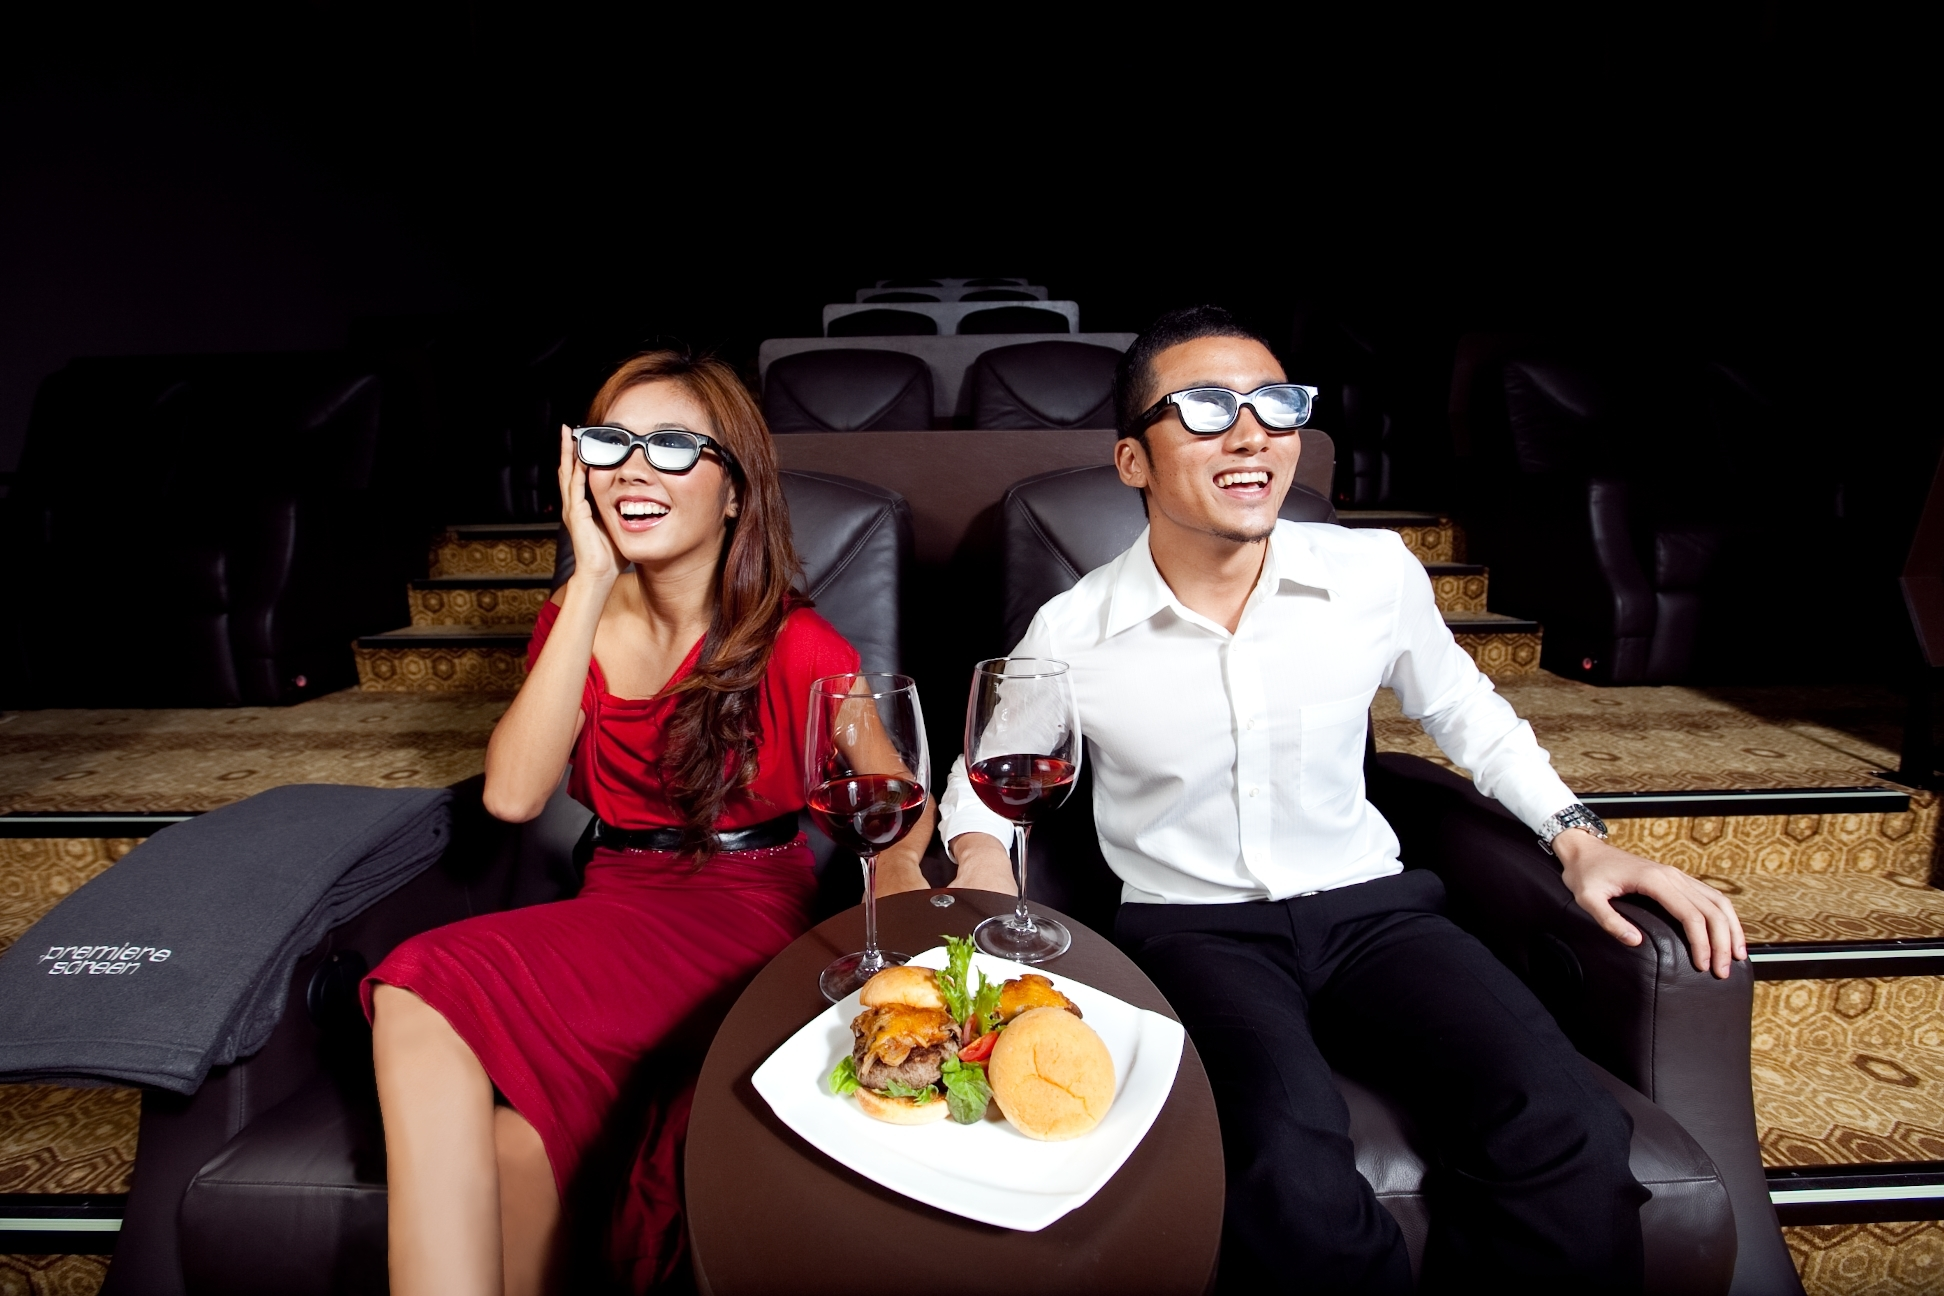 Splash out on a fancy VIP cinema experience